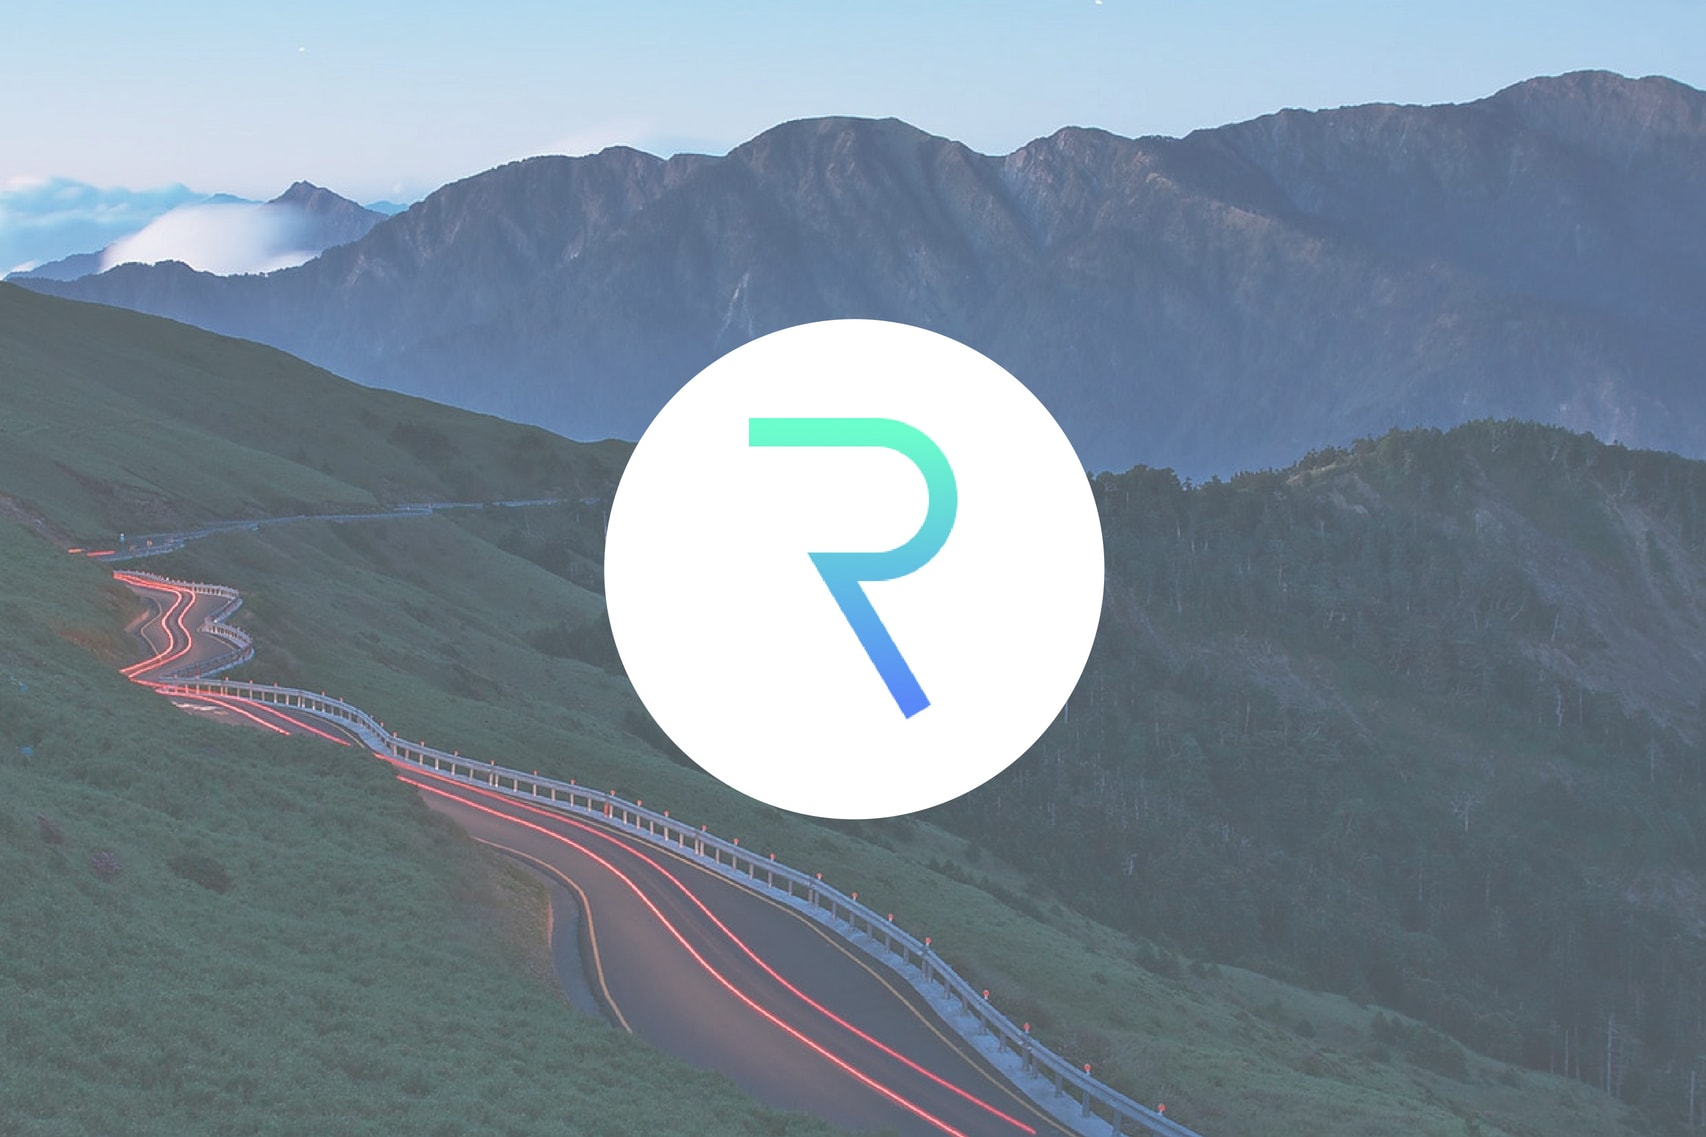 Request Network News in May